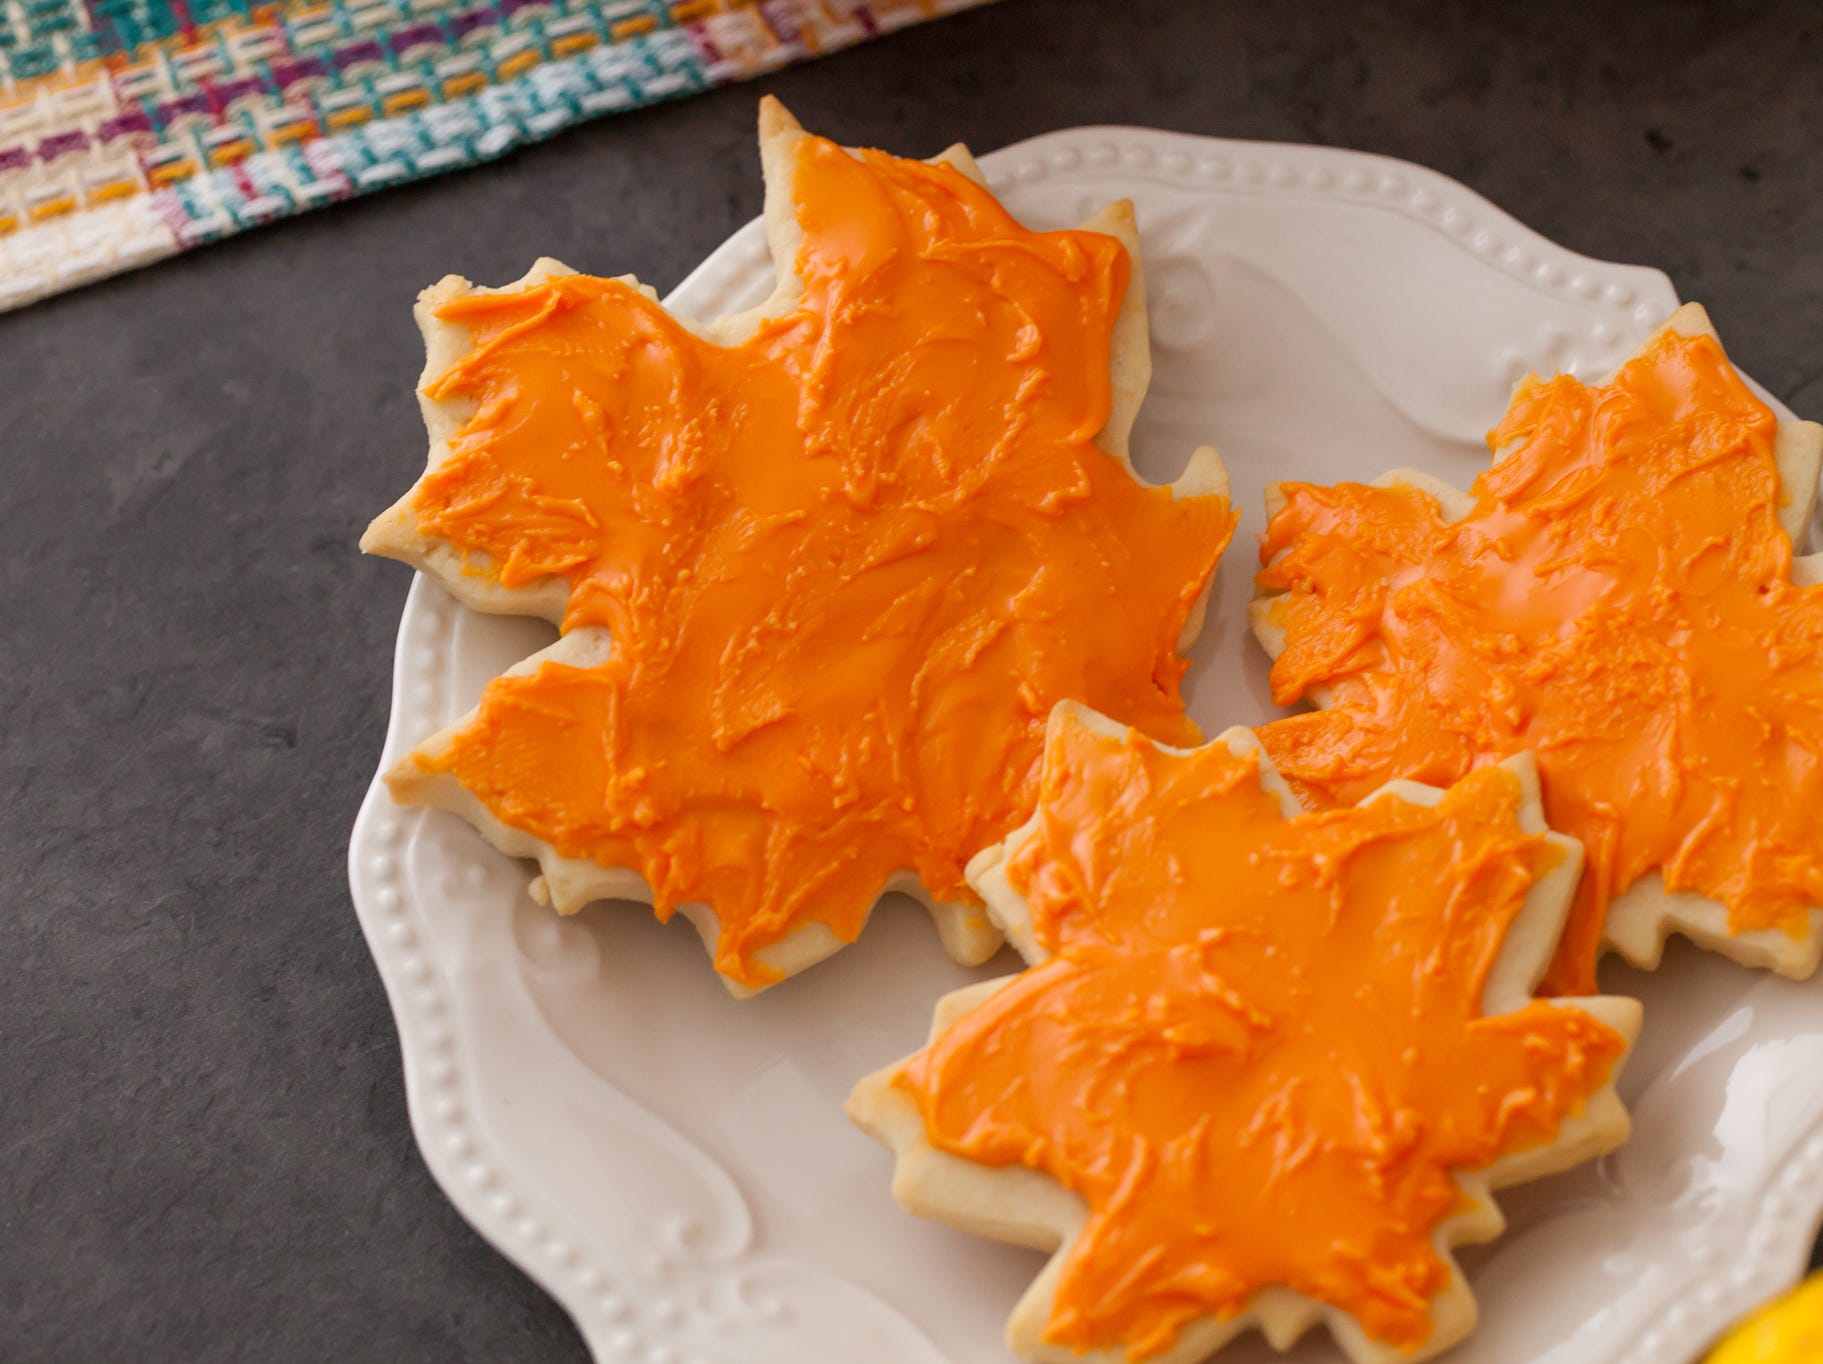 Nothing conjures up images of a lovely fall day better than brightly-colored leaves — which makes these maple leaf cookies the perfect autumn treat!